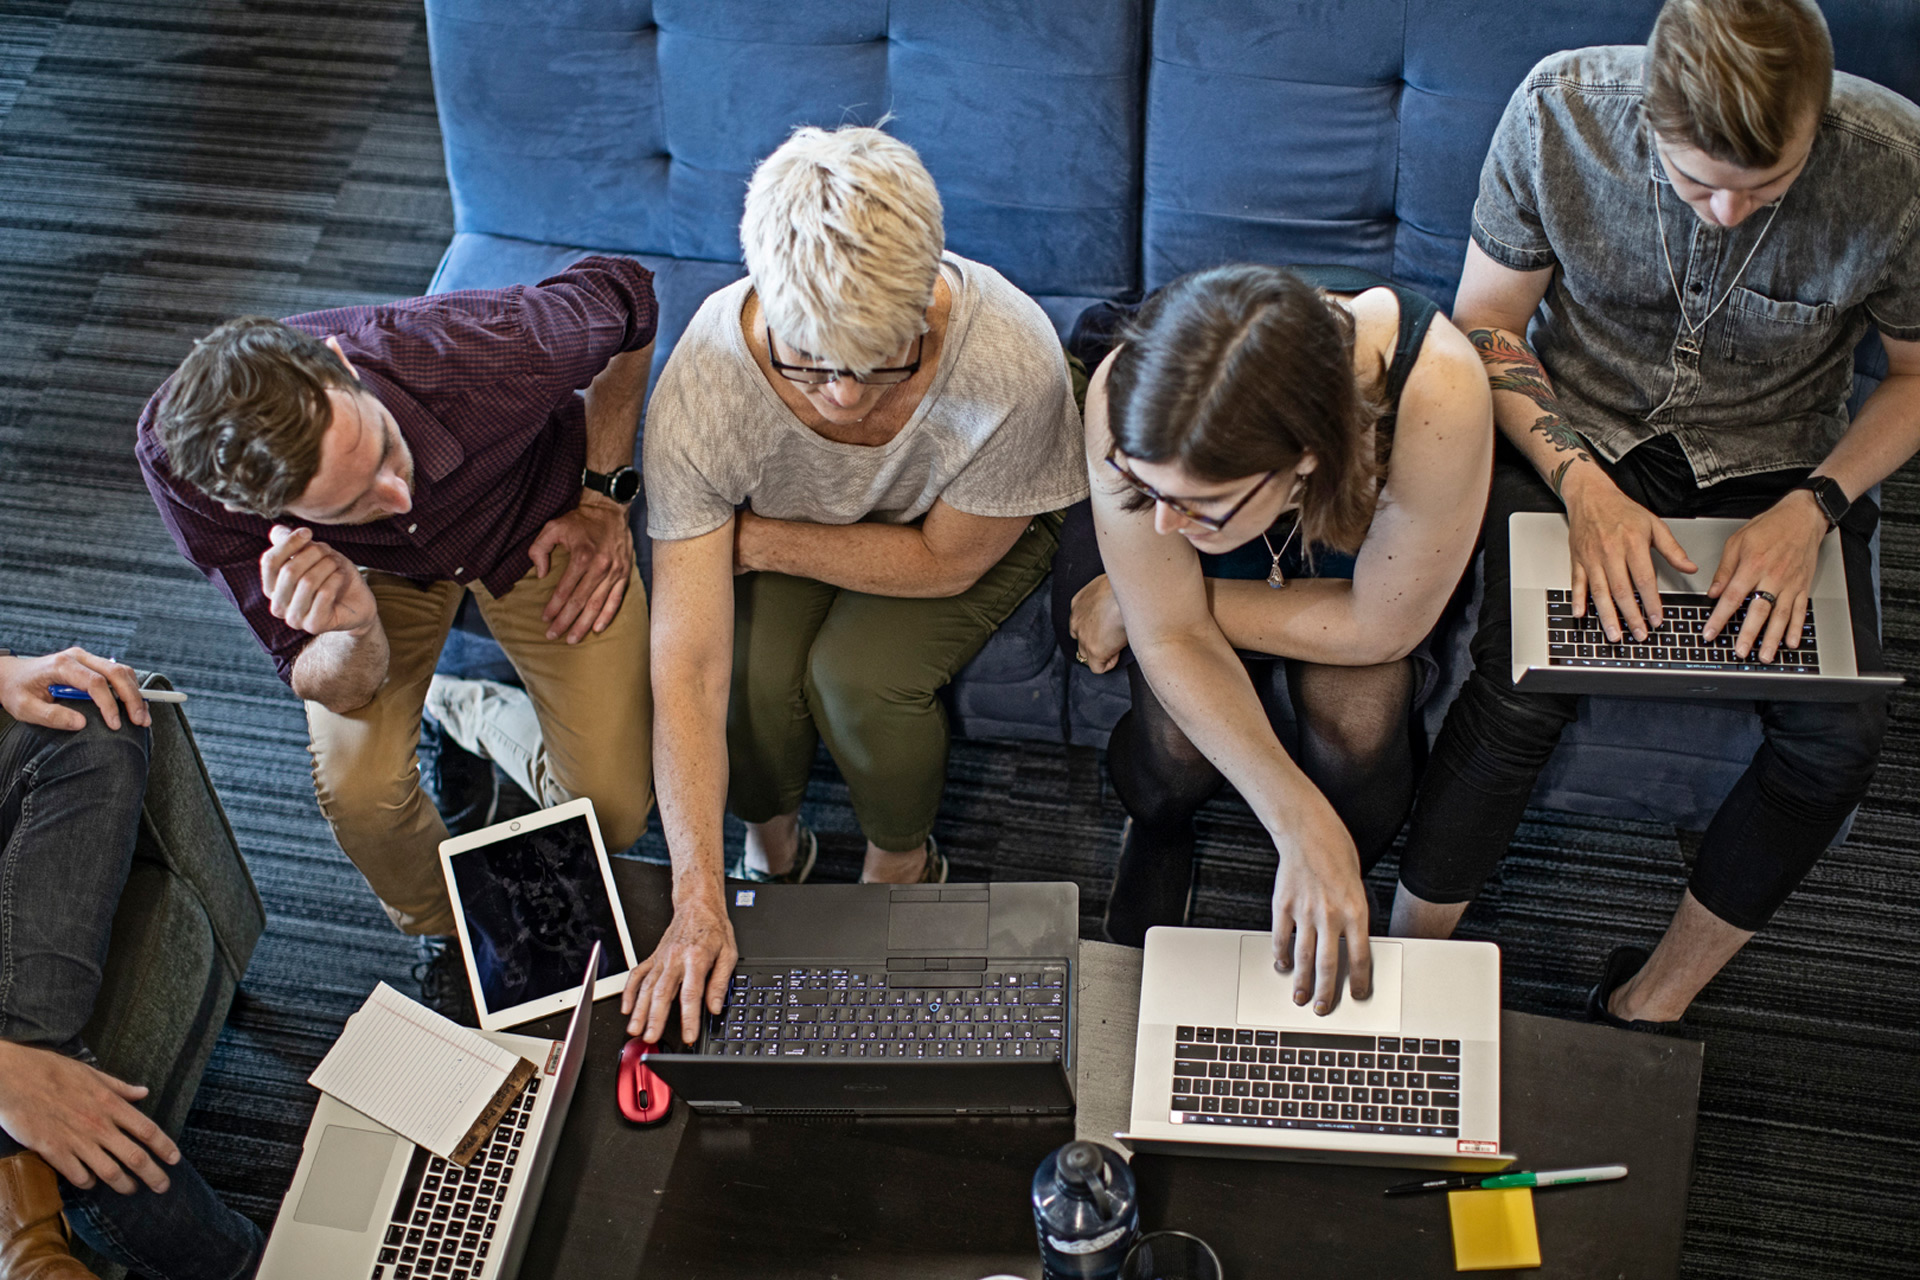 people sitting on couch looking over computers